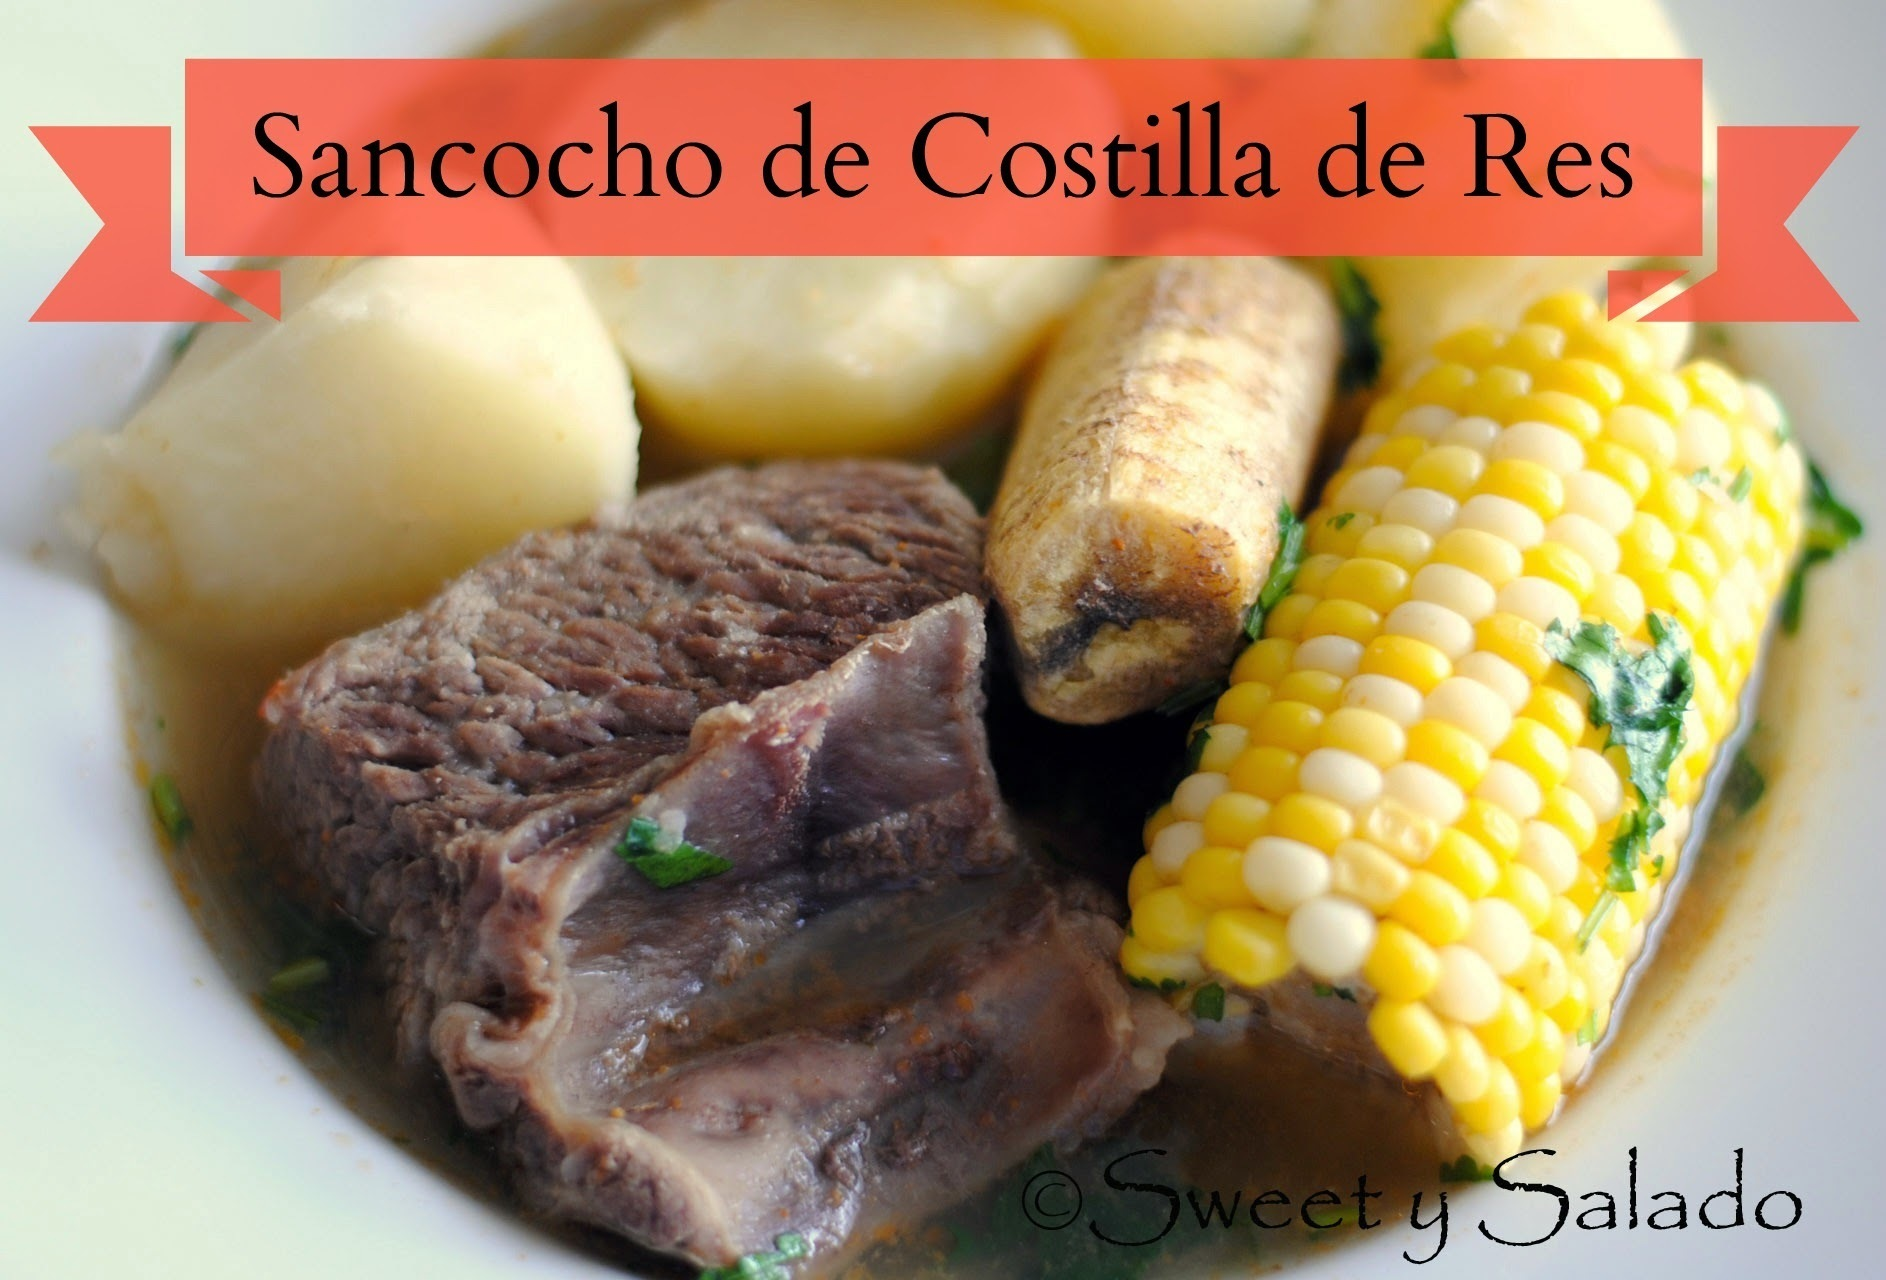 Sancocho de Costilla de Res